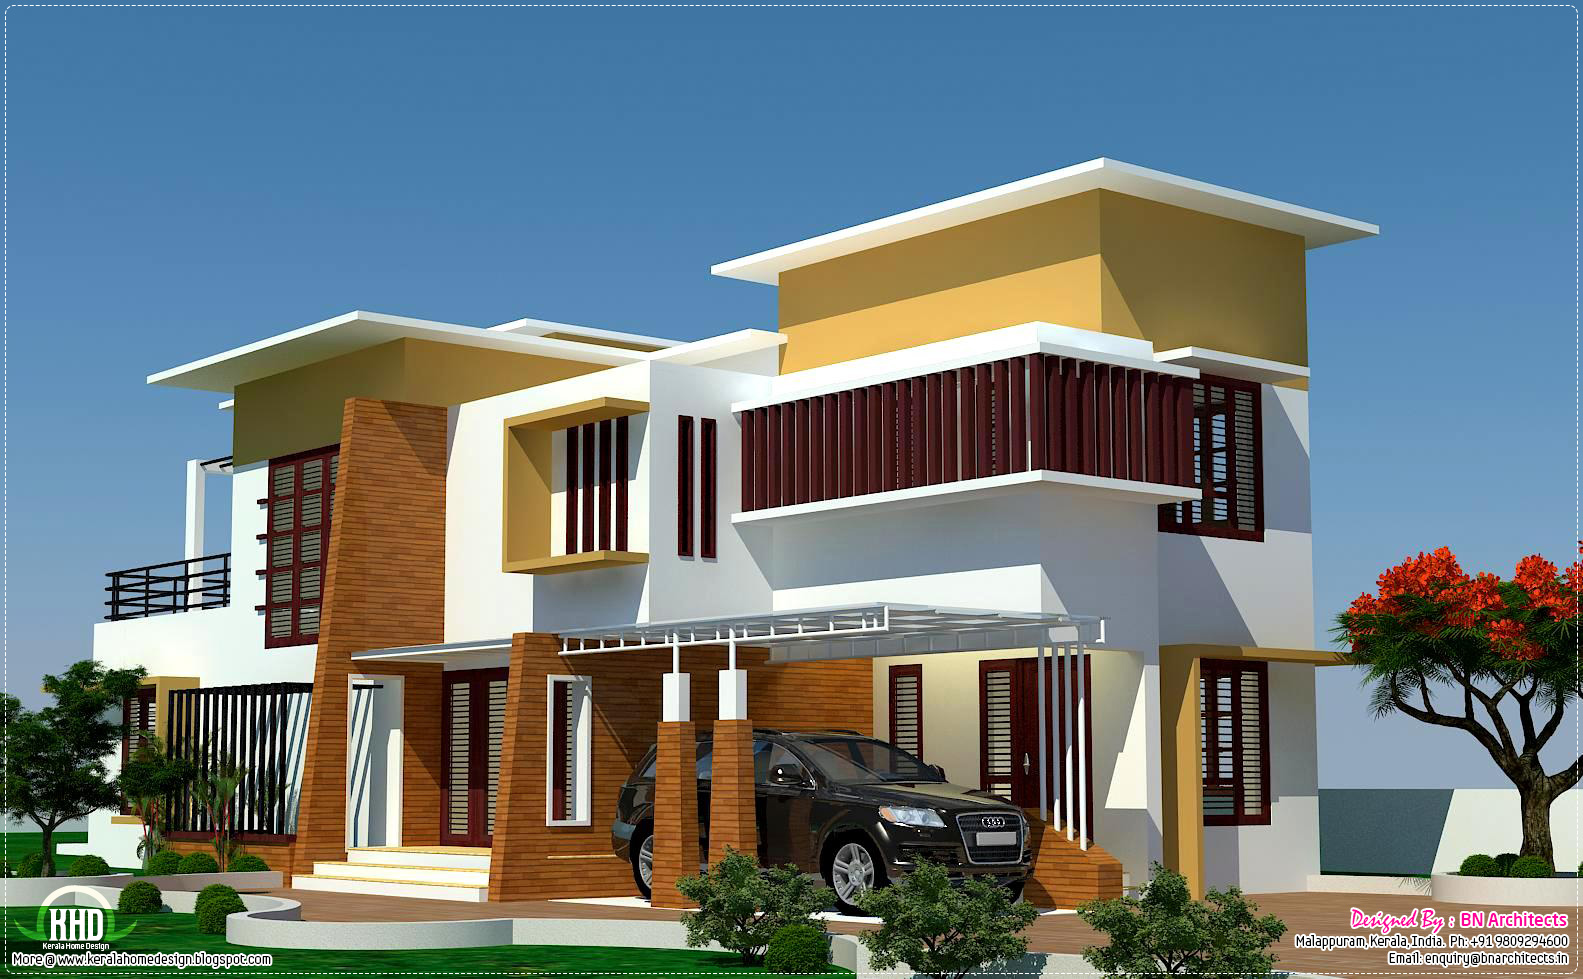 4 bedroom modern villa design kerala home design and for Modern kerala style house plans with photos